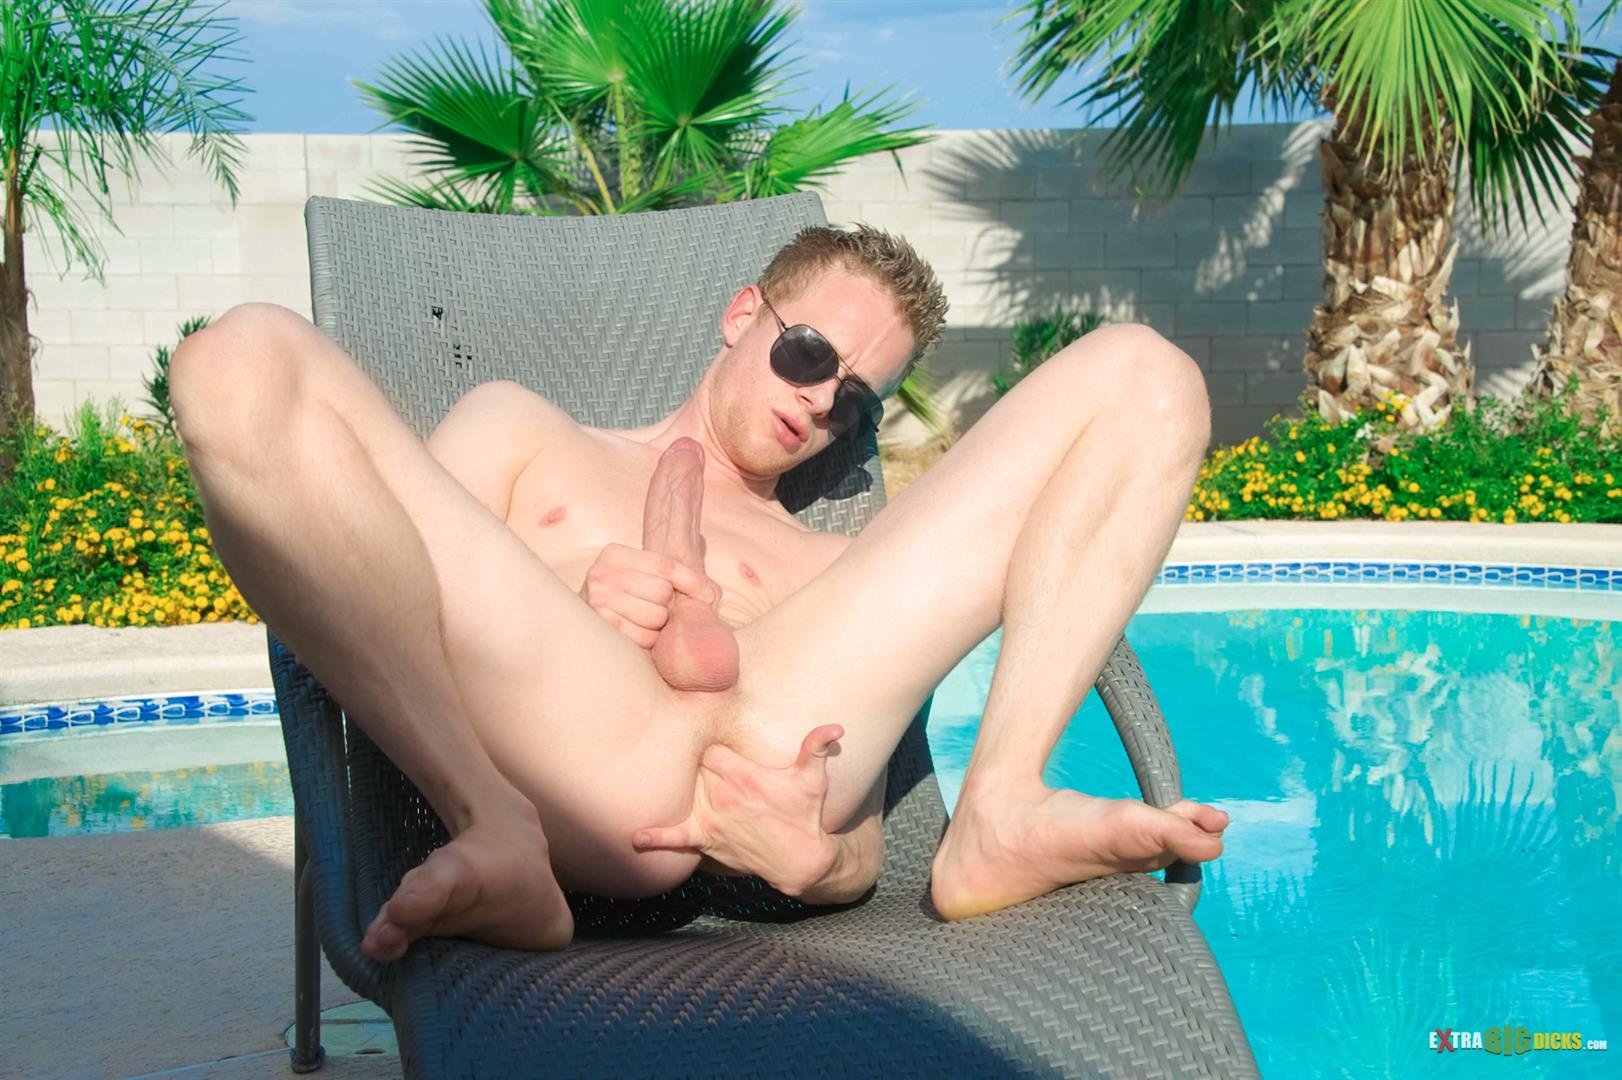 Extra Big Dicks Liam Harkmore Huge cock jerkoff with dildo Amateur Gay Porn 04 Amateur Young Guy Lays Out In The Florida Sun and Strokes His Big Long Cock